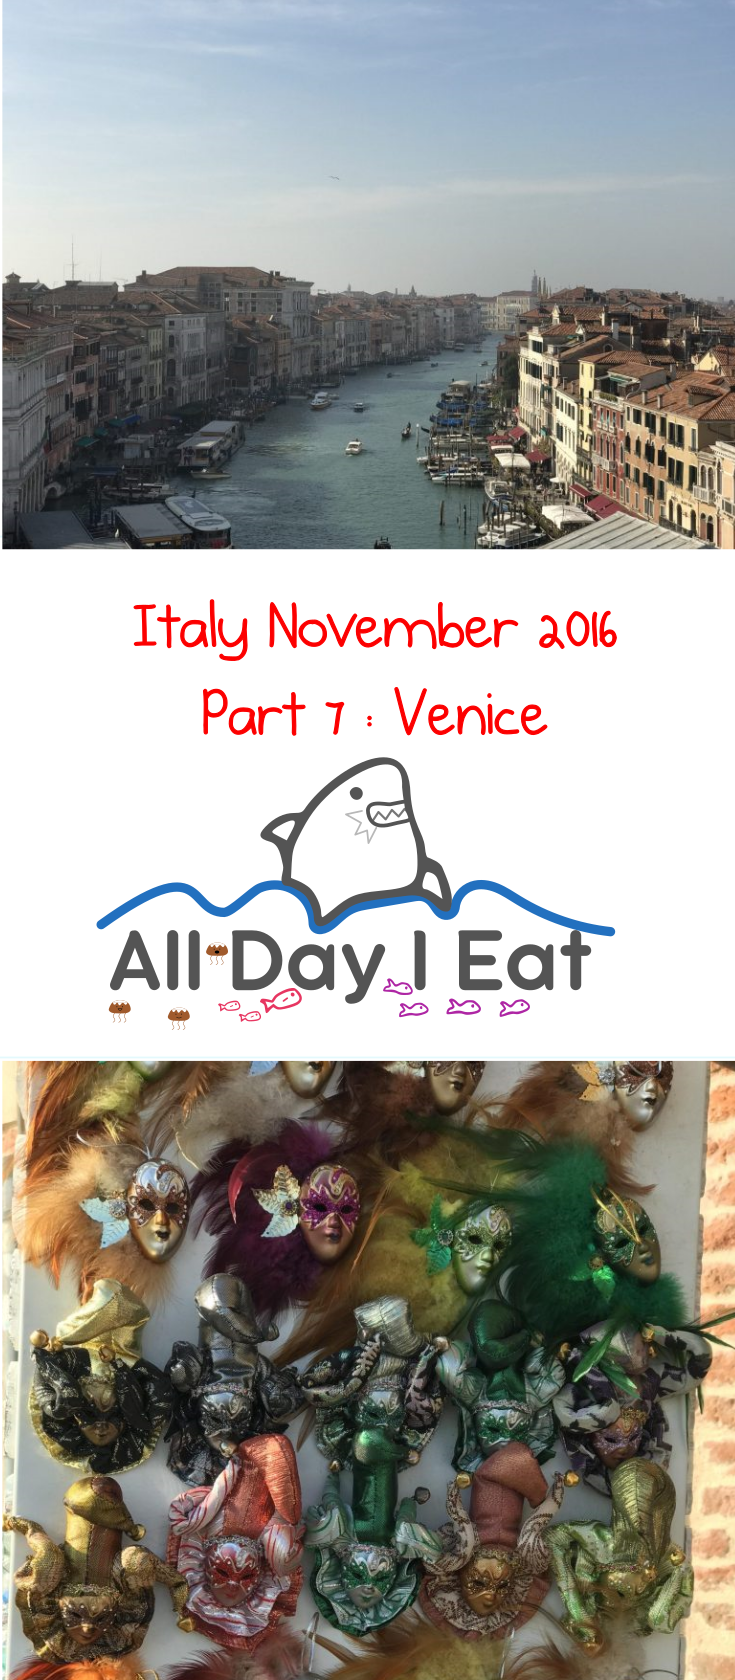 Italy November 2016 Part 7 Venice Travel Guide | www.alldayieat.com